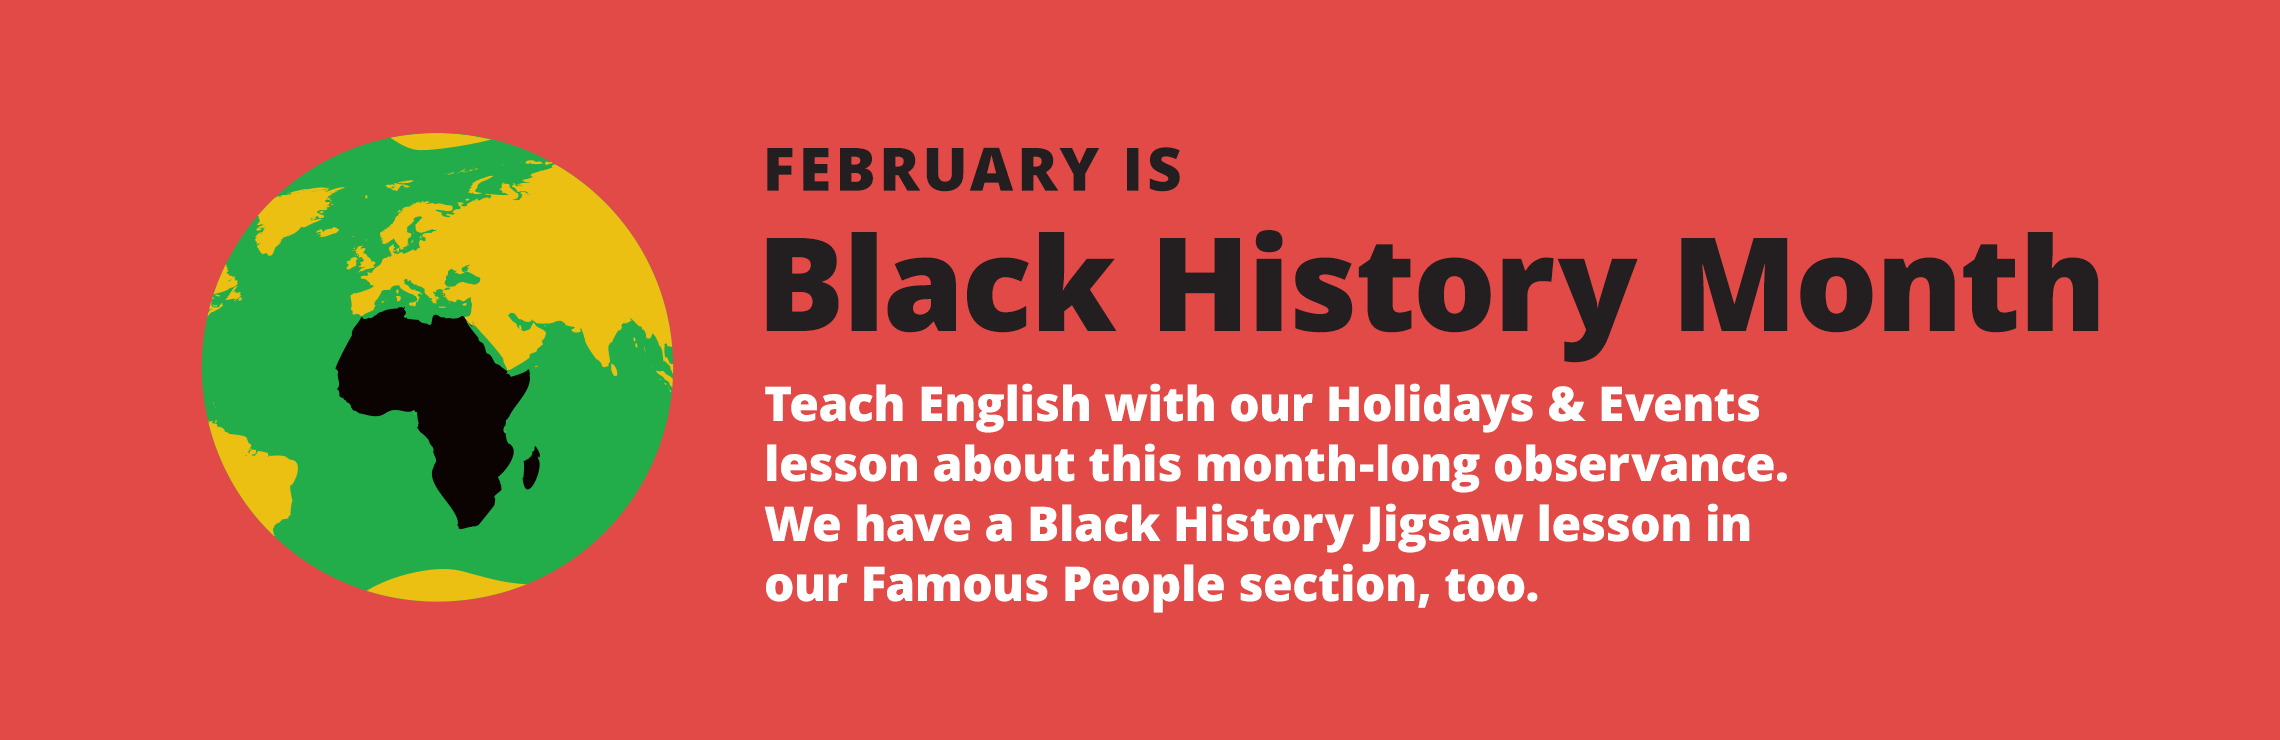 black history lesson plans and essays This page features materials designed to help teachers and students use the information presented in the black americans in congress publication in their classrooms it includes lesson plans on the african-american pioneers who served on capitol hill from 1870 to 2007 based on the contextual essays from the black americans in congress book, as.